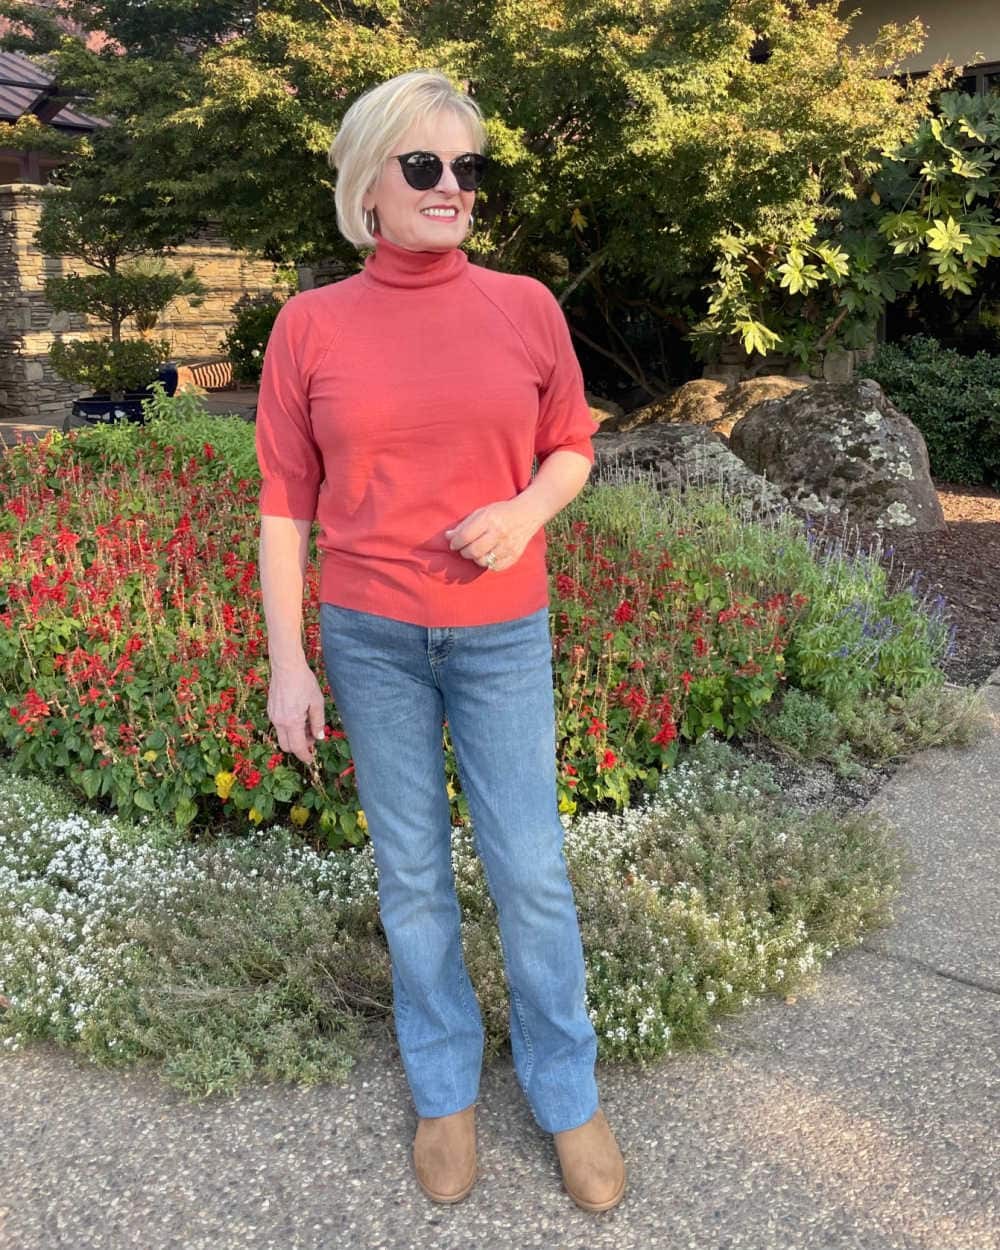 blond woman wearing coral sweater and blue jeans